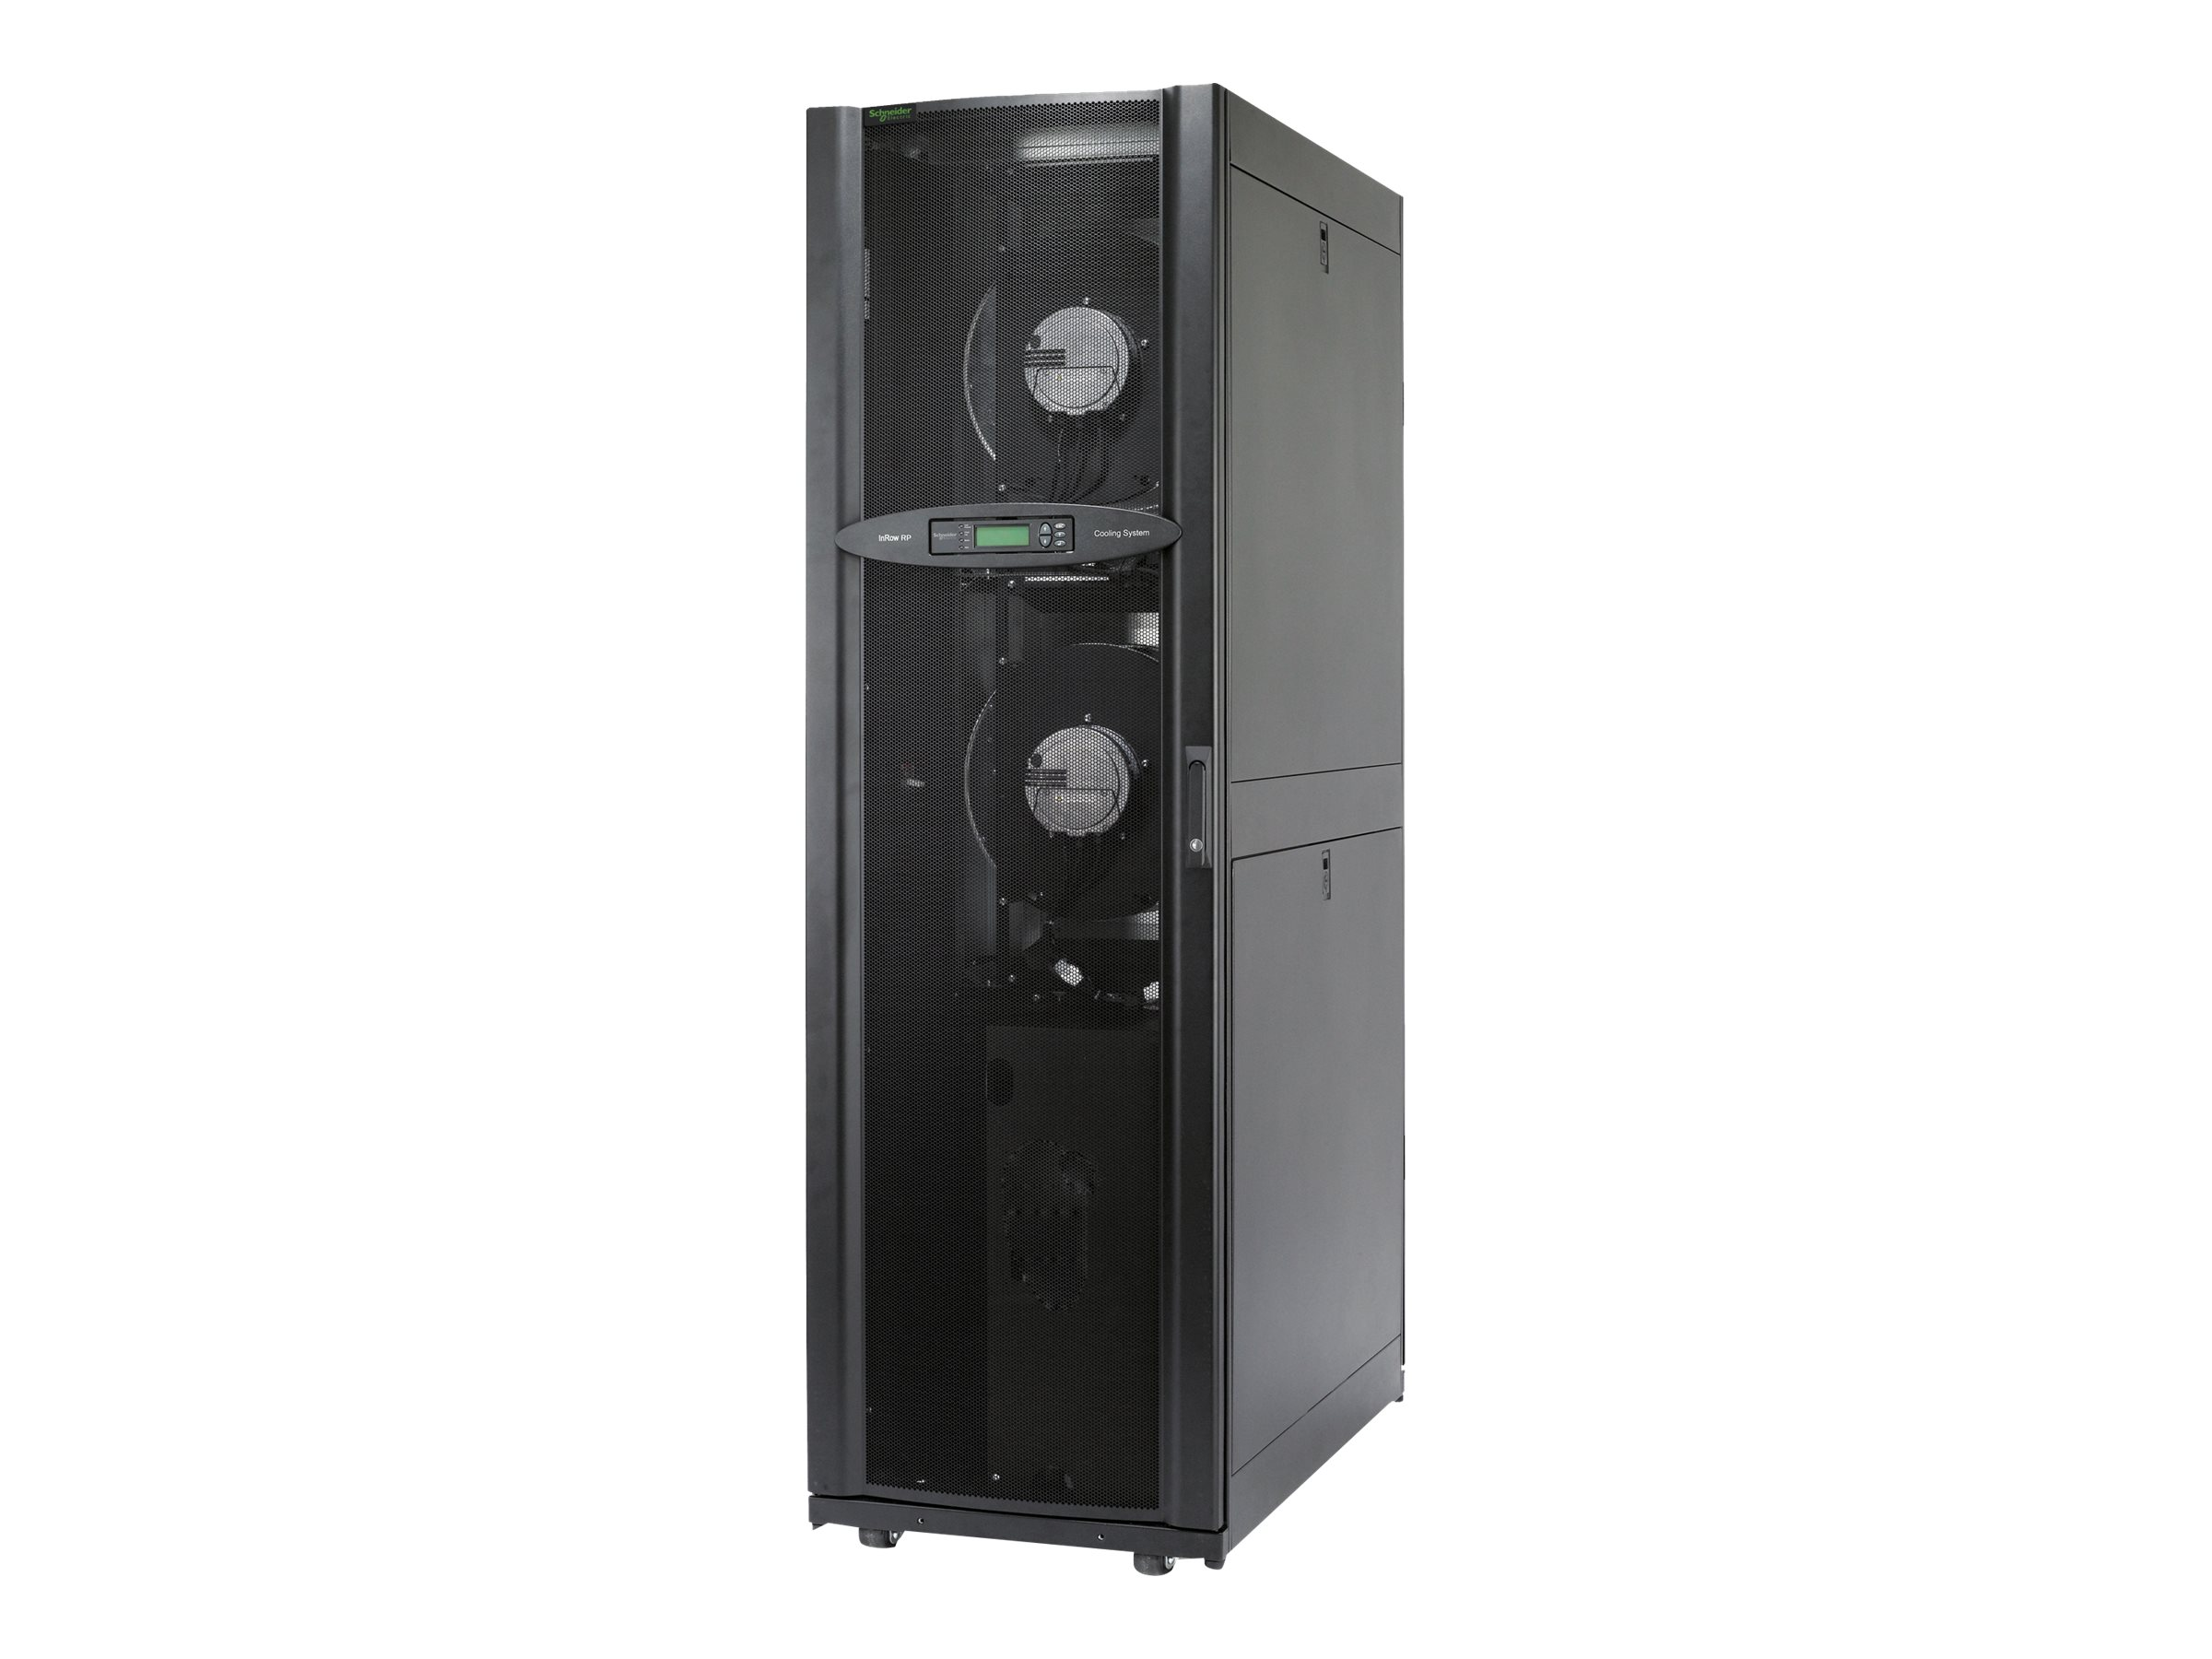 APC InRow RP DX ACRP100 rack air-conditioning cooling system - 42U